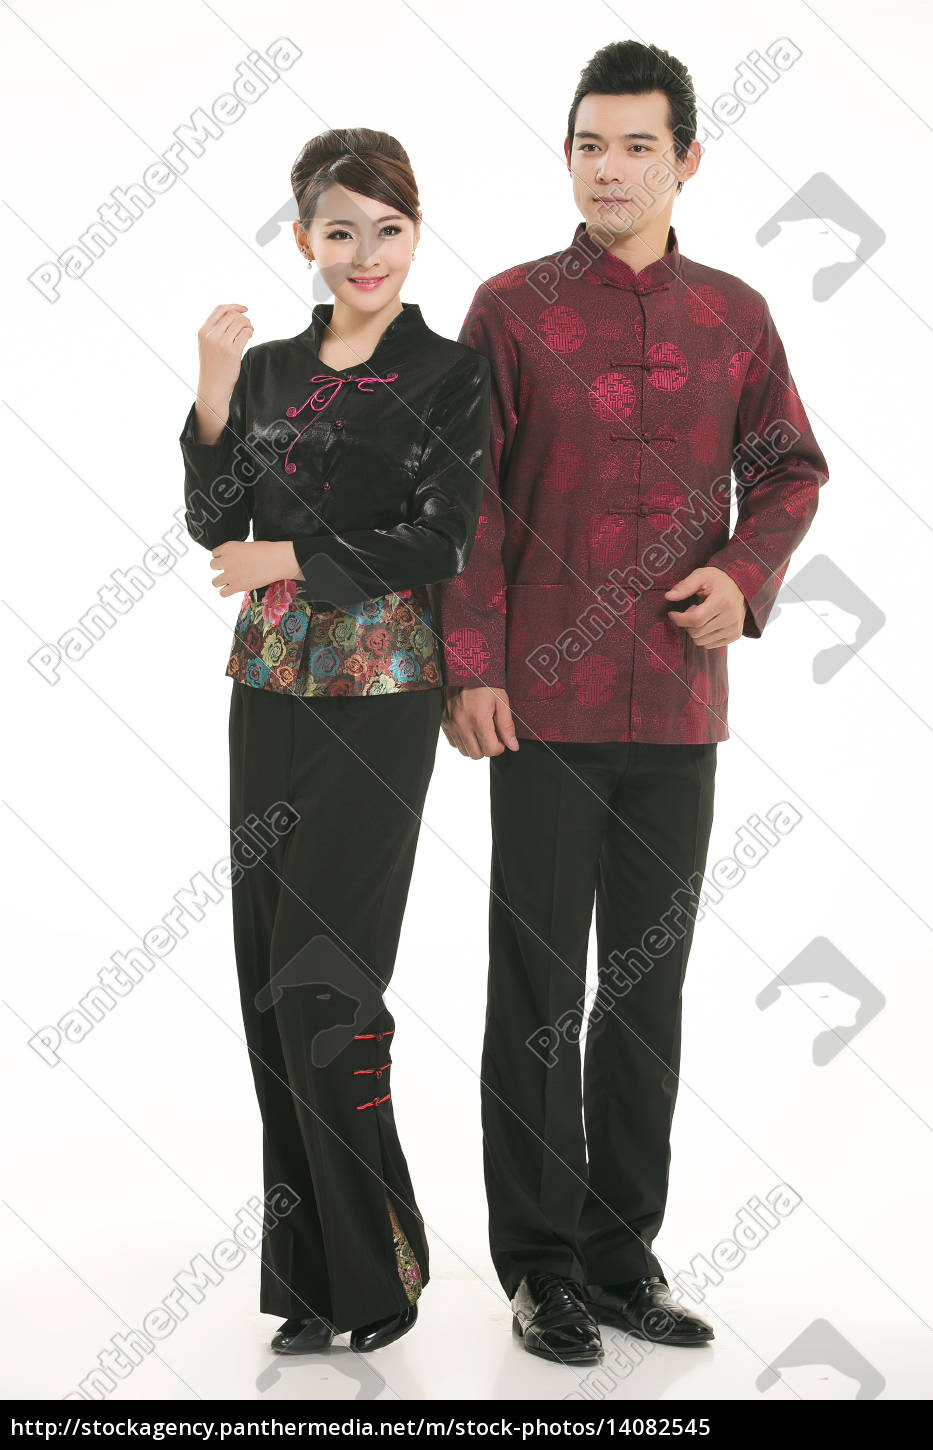 service staff, cotton wadded short gown, cotton wadded undercoat, cottonpadded jacket, greet guests, traditional chinese garments - 14082545